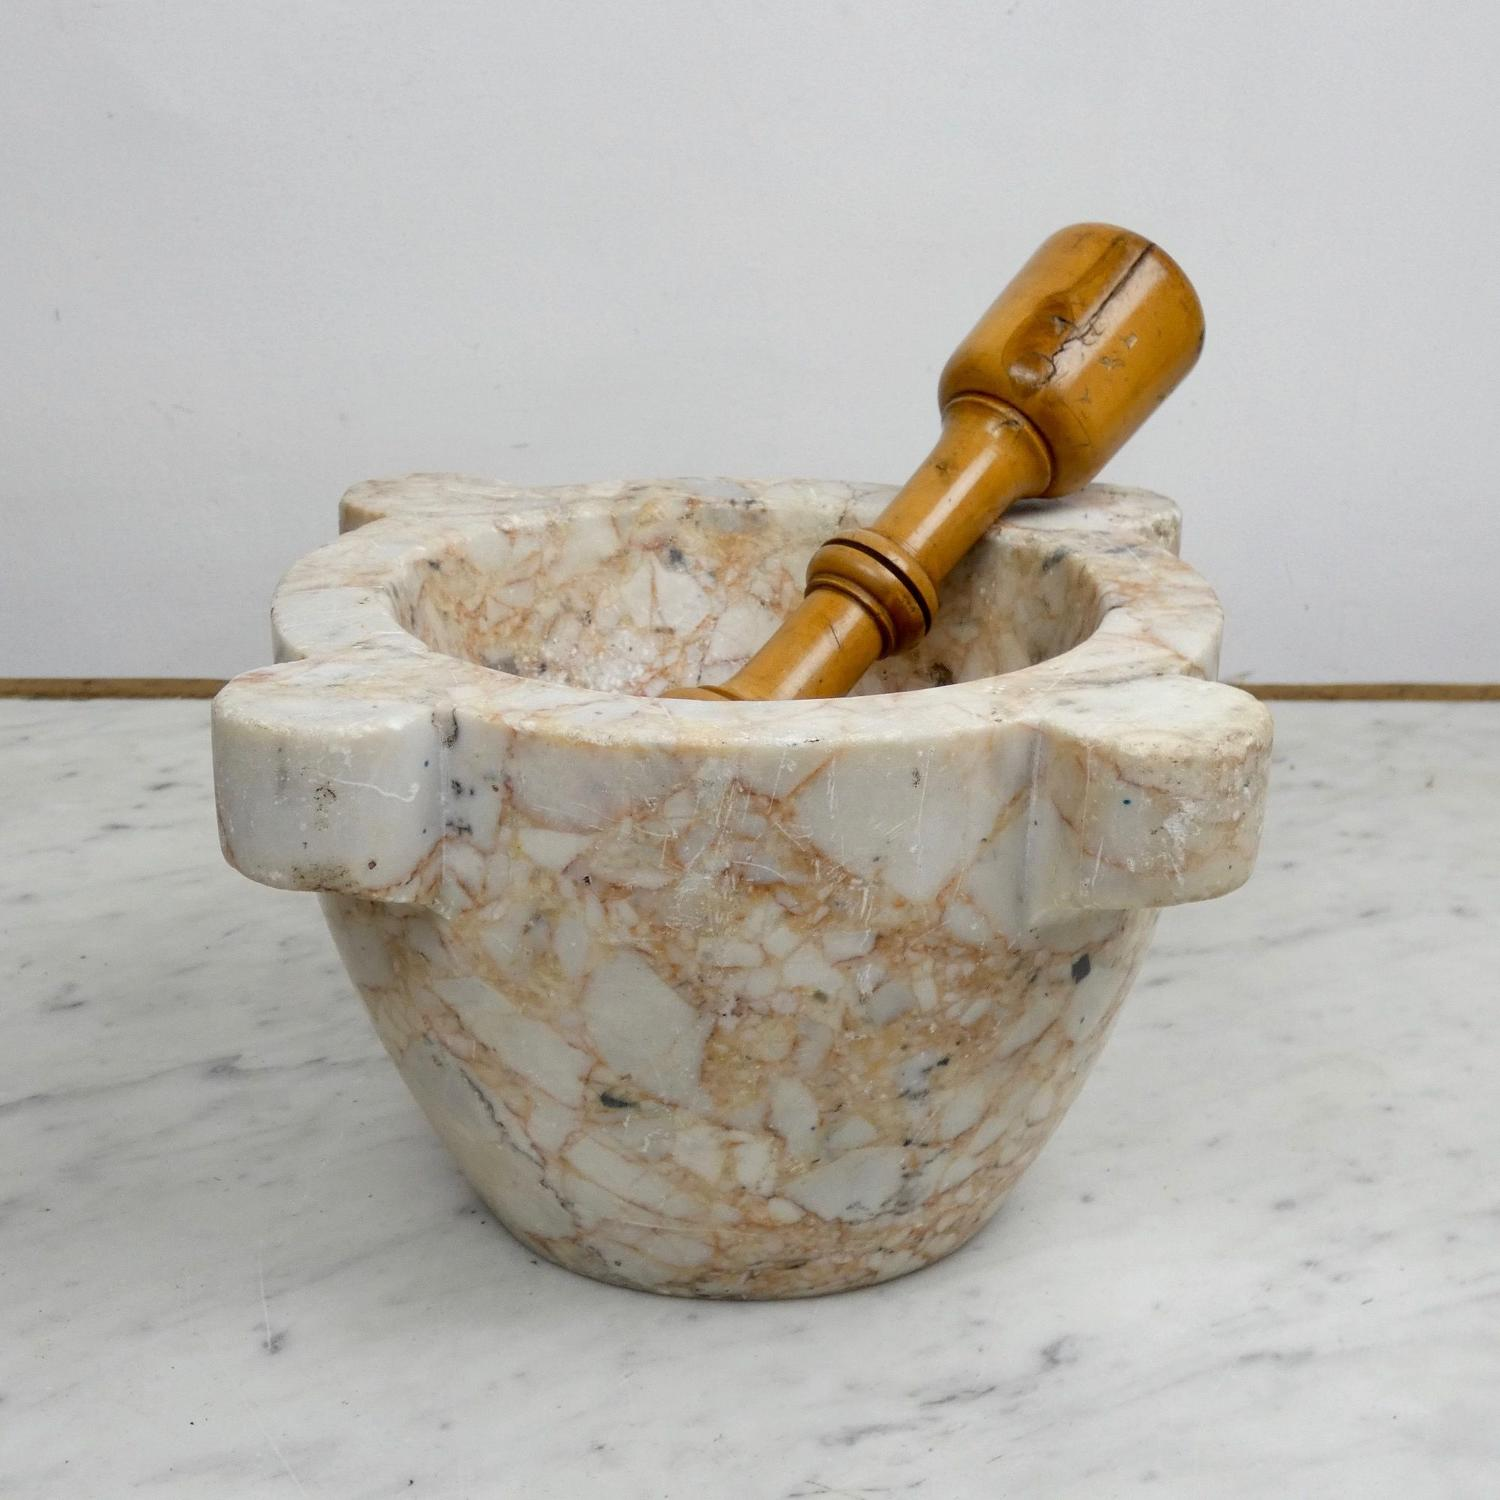 Salmon coloured marble mortar